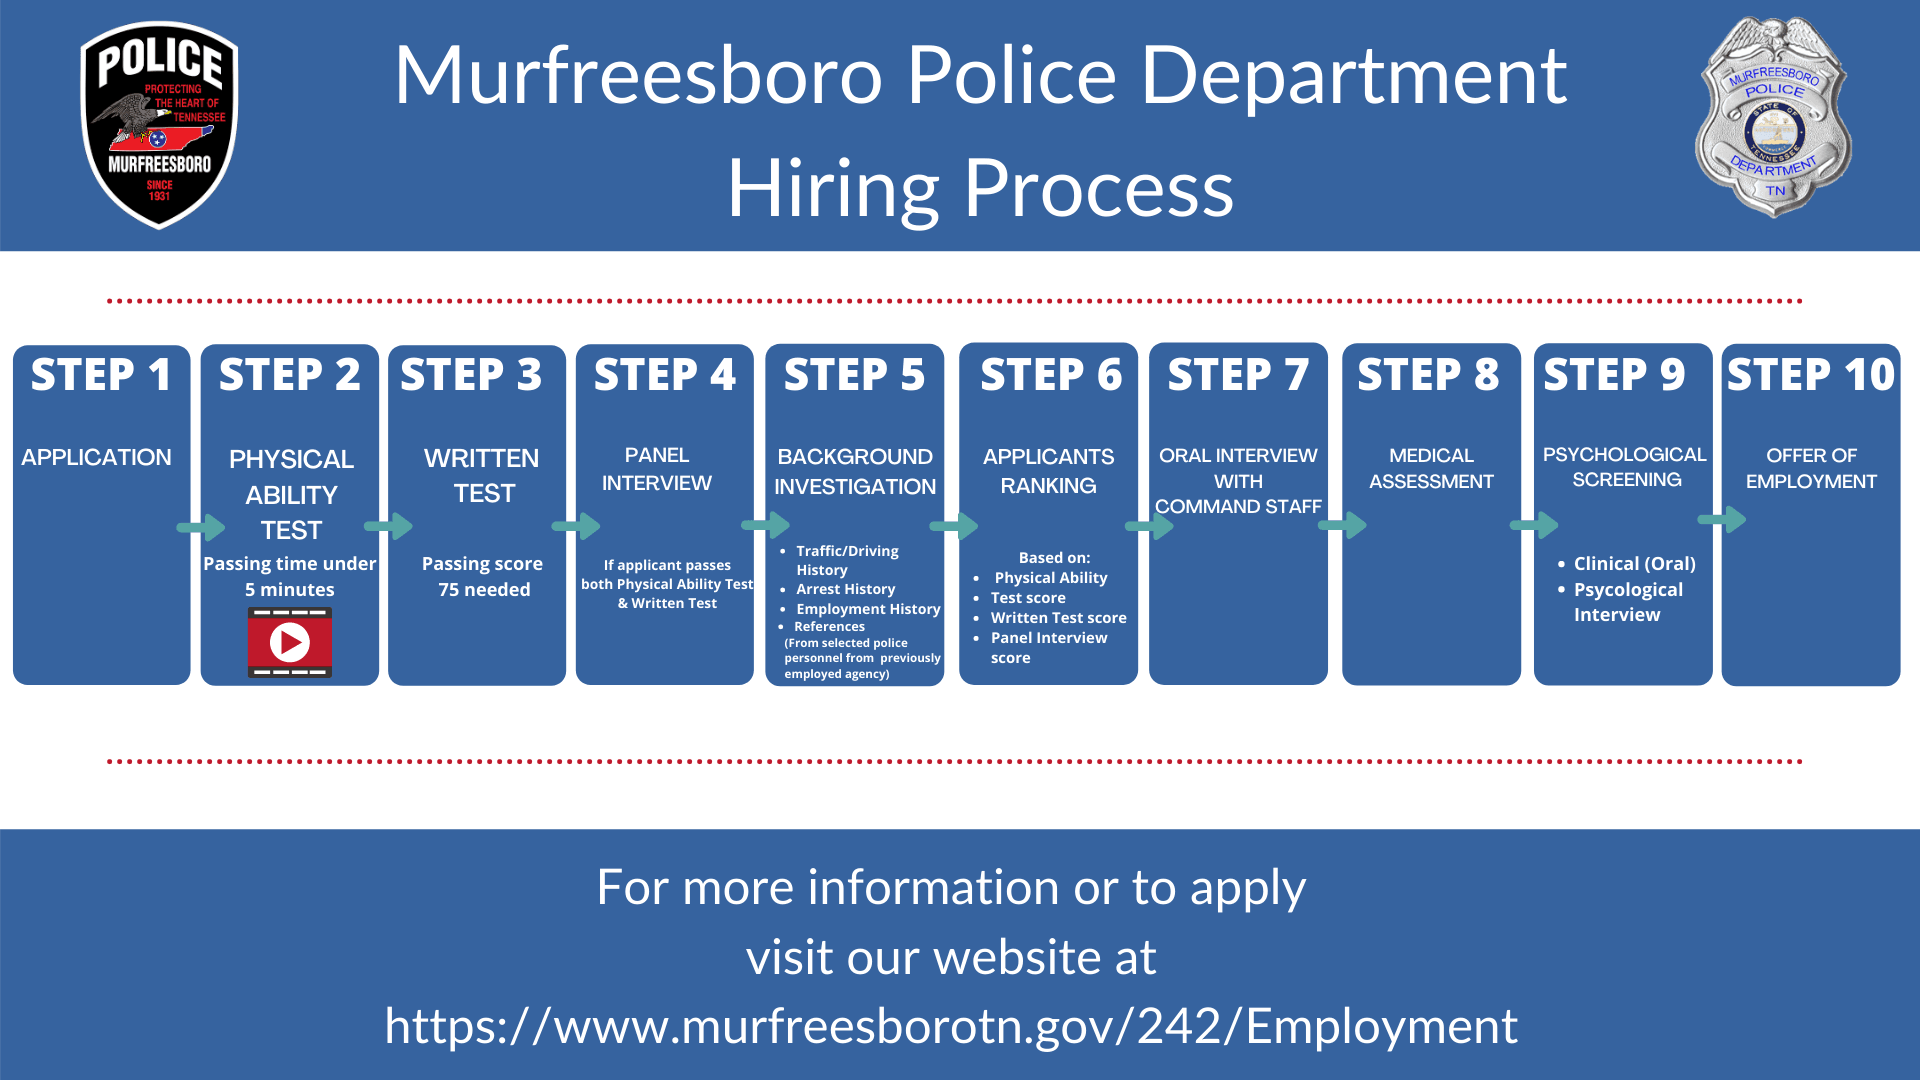 Murfreesboro Police Department Hiring Process Update Opens in new window